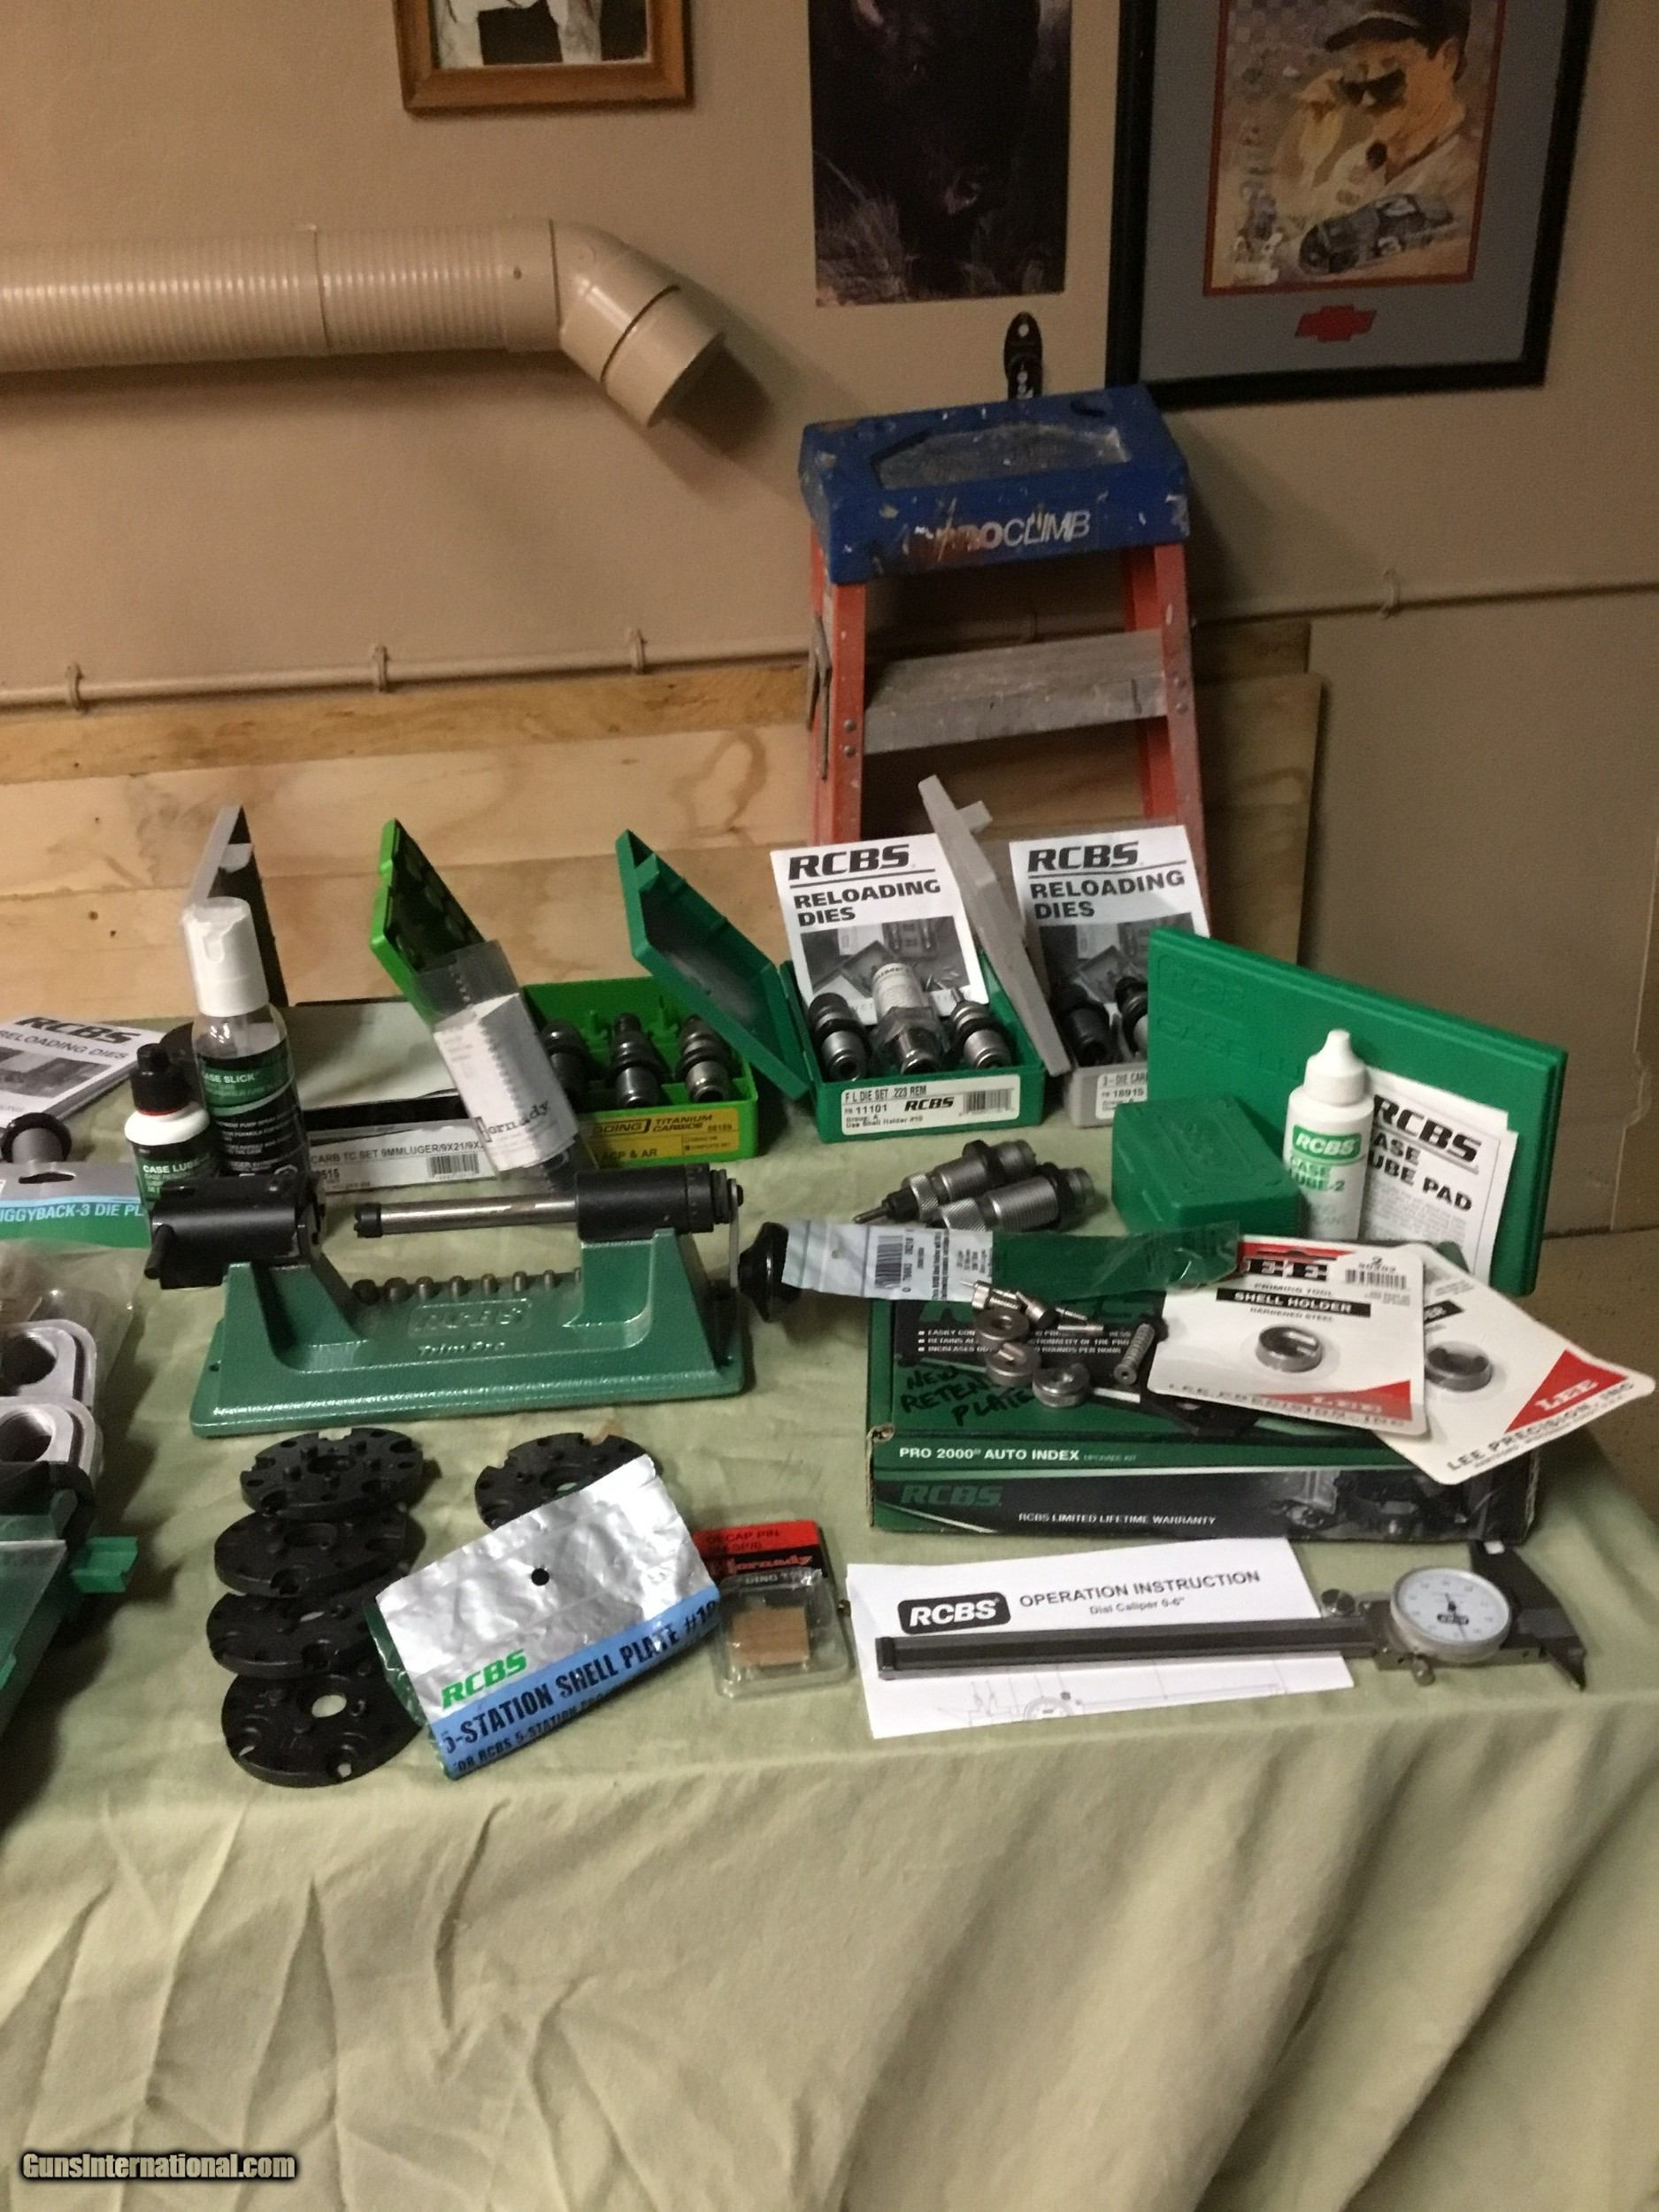 RCBS Reloading Equipment And Supplies, 6 Large Boxes Full for sale